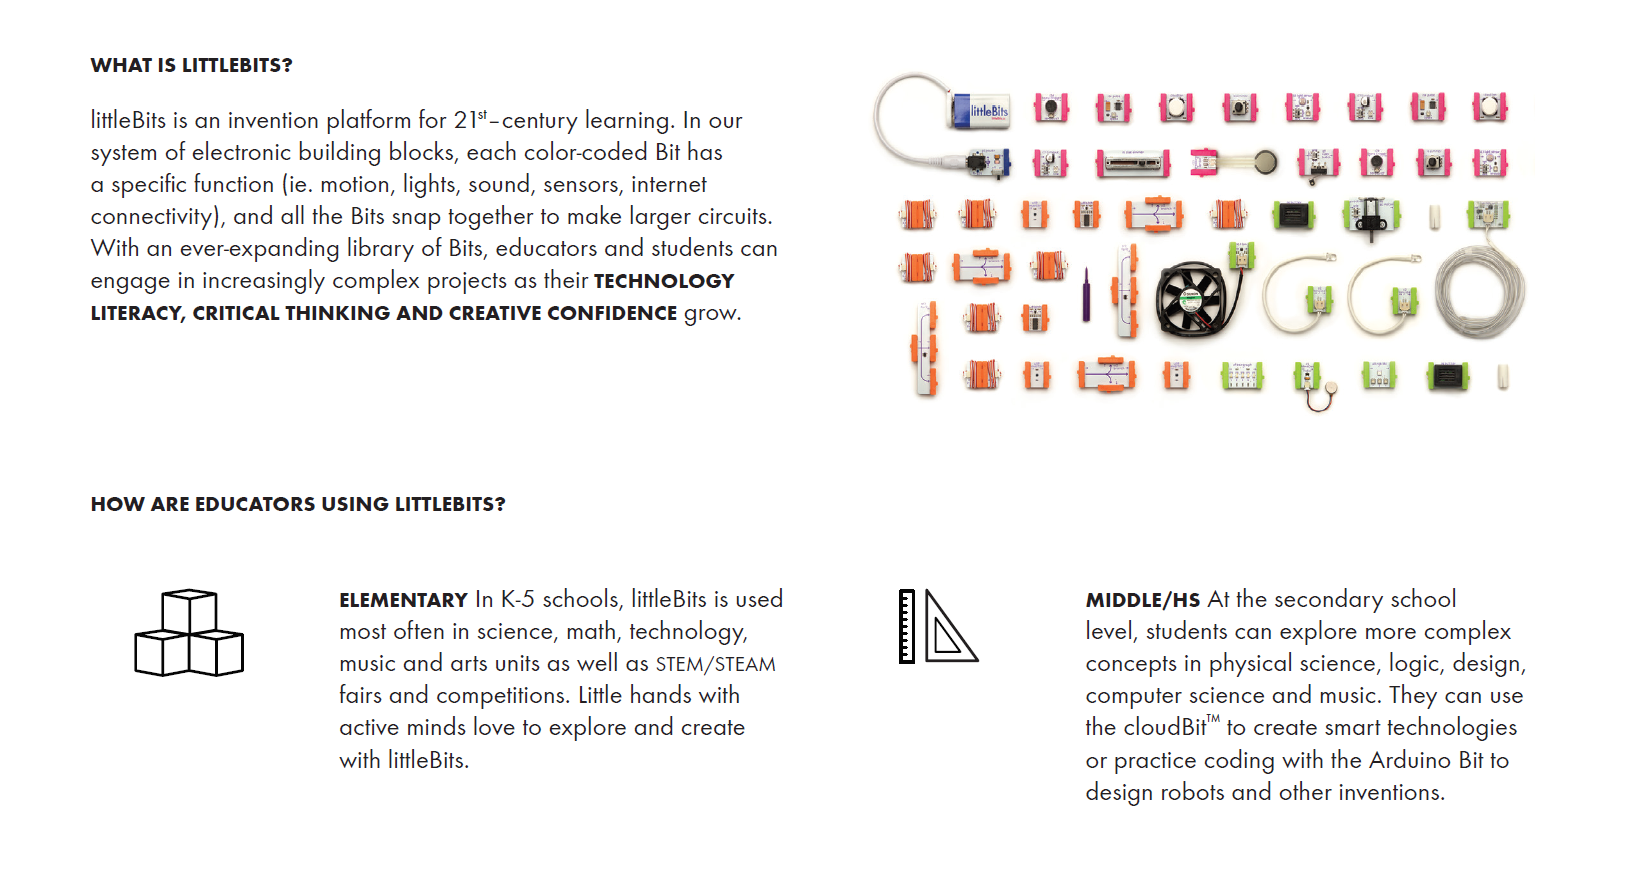 About littleBits